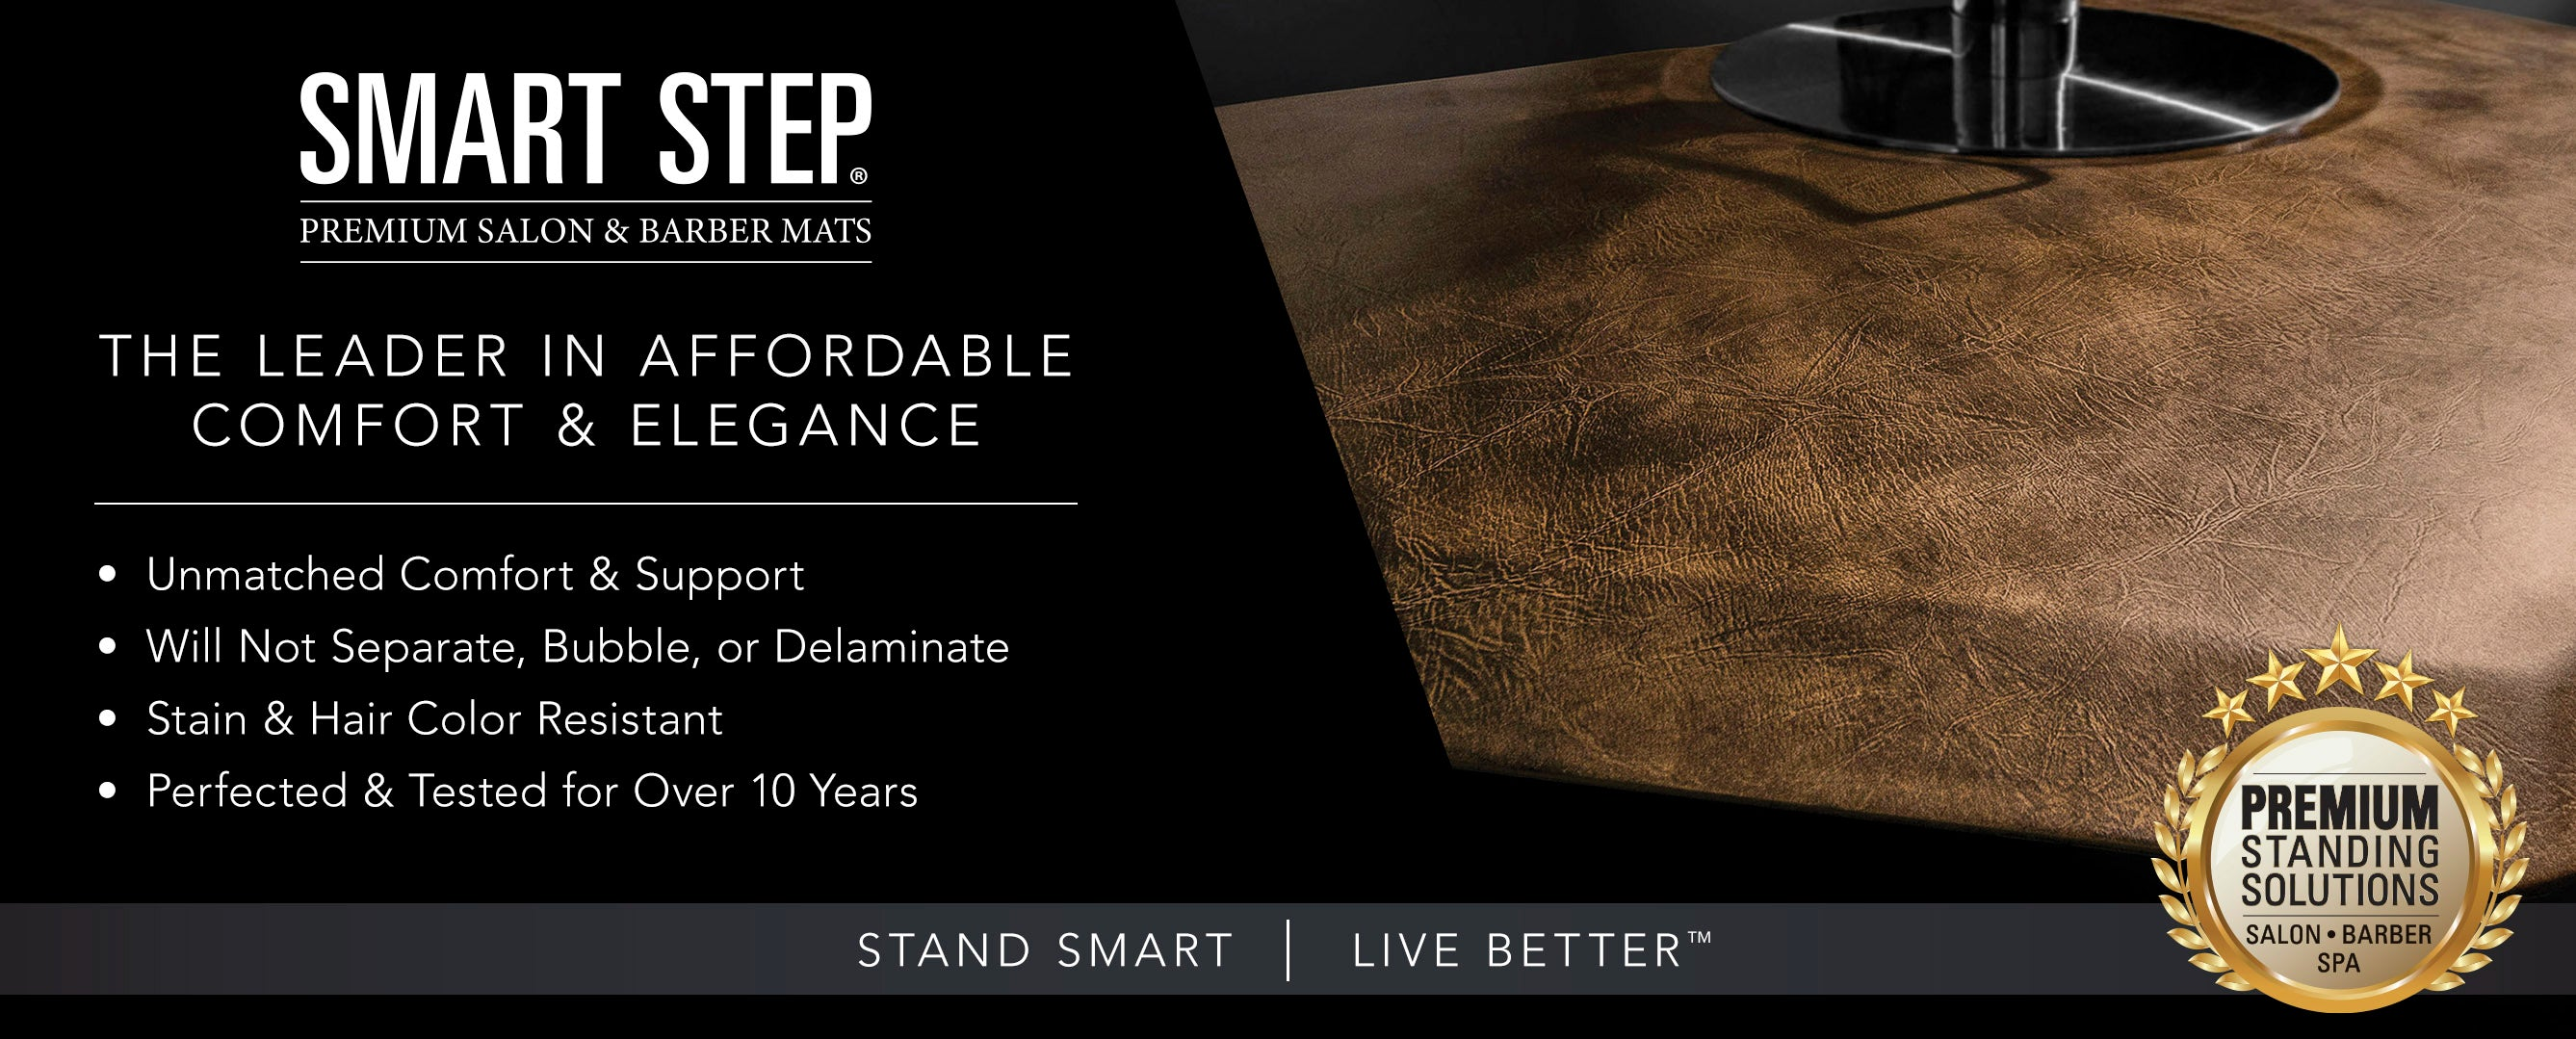 Smart Step Premium Standing Solutions for Salon and Barber